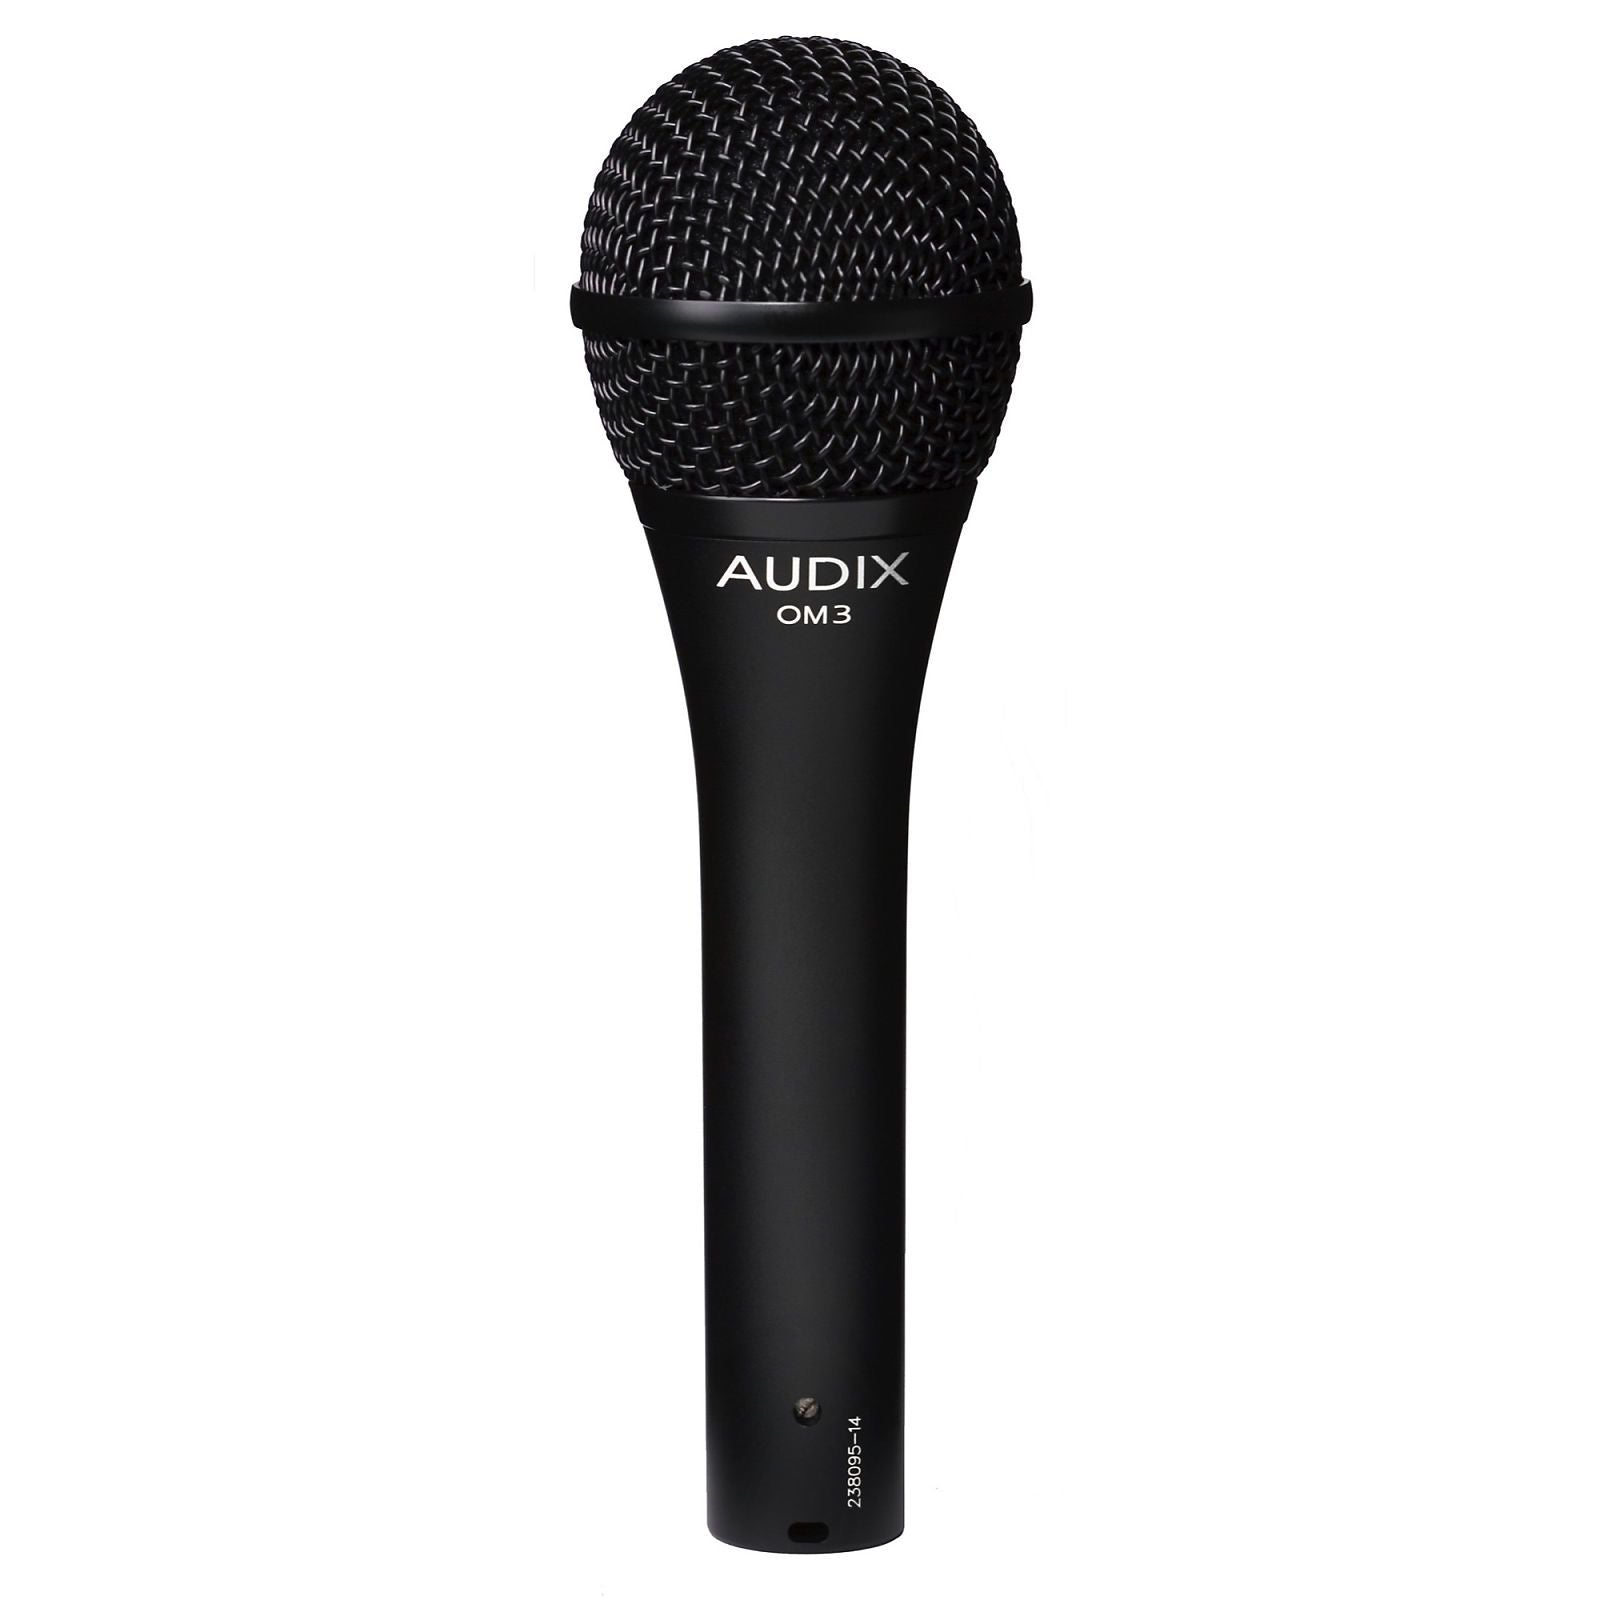 Audix OM3 Dynamic Hypercardioid Handheld Microphone